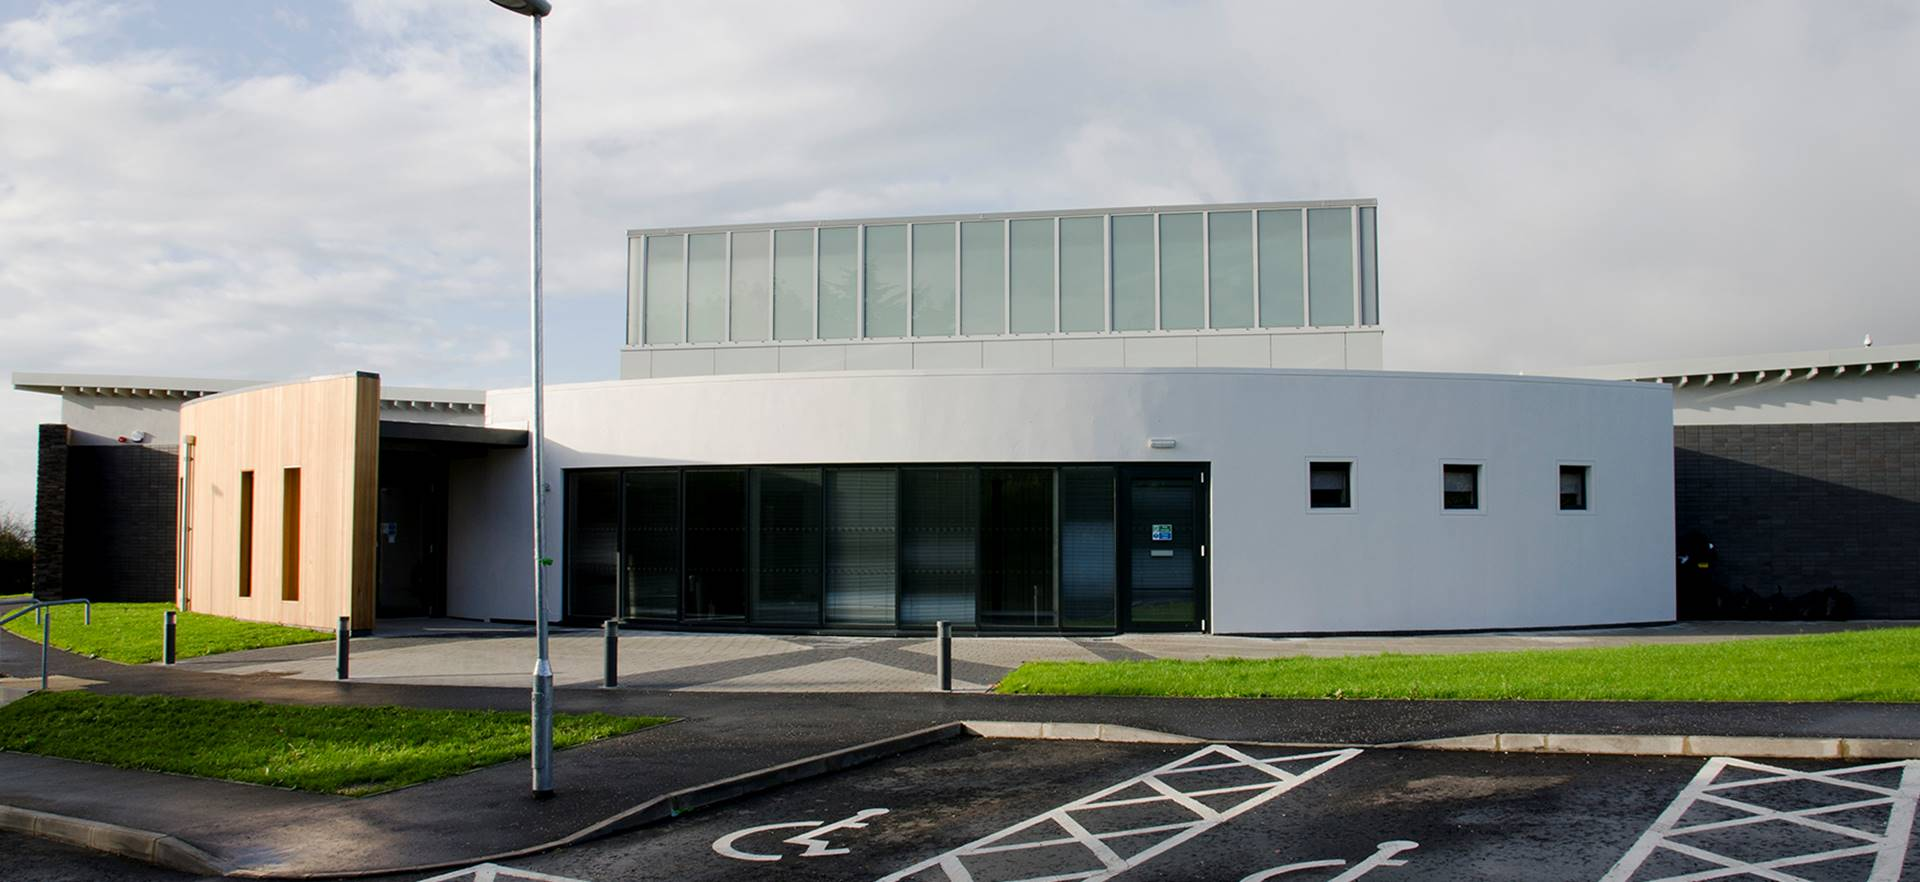 Eden Community Centre, Carrickfergus